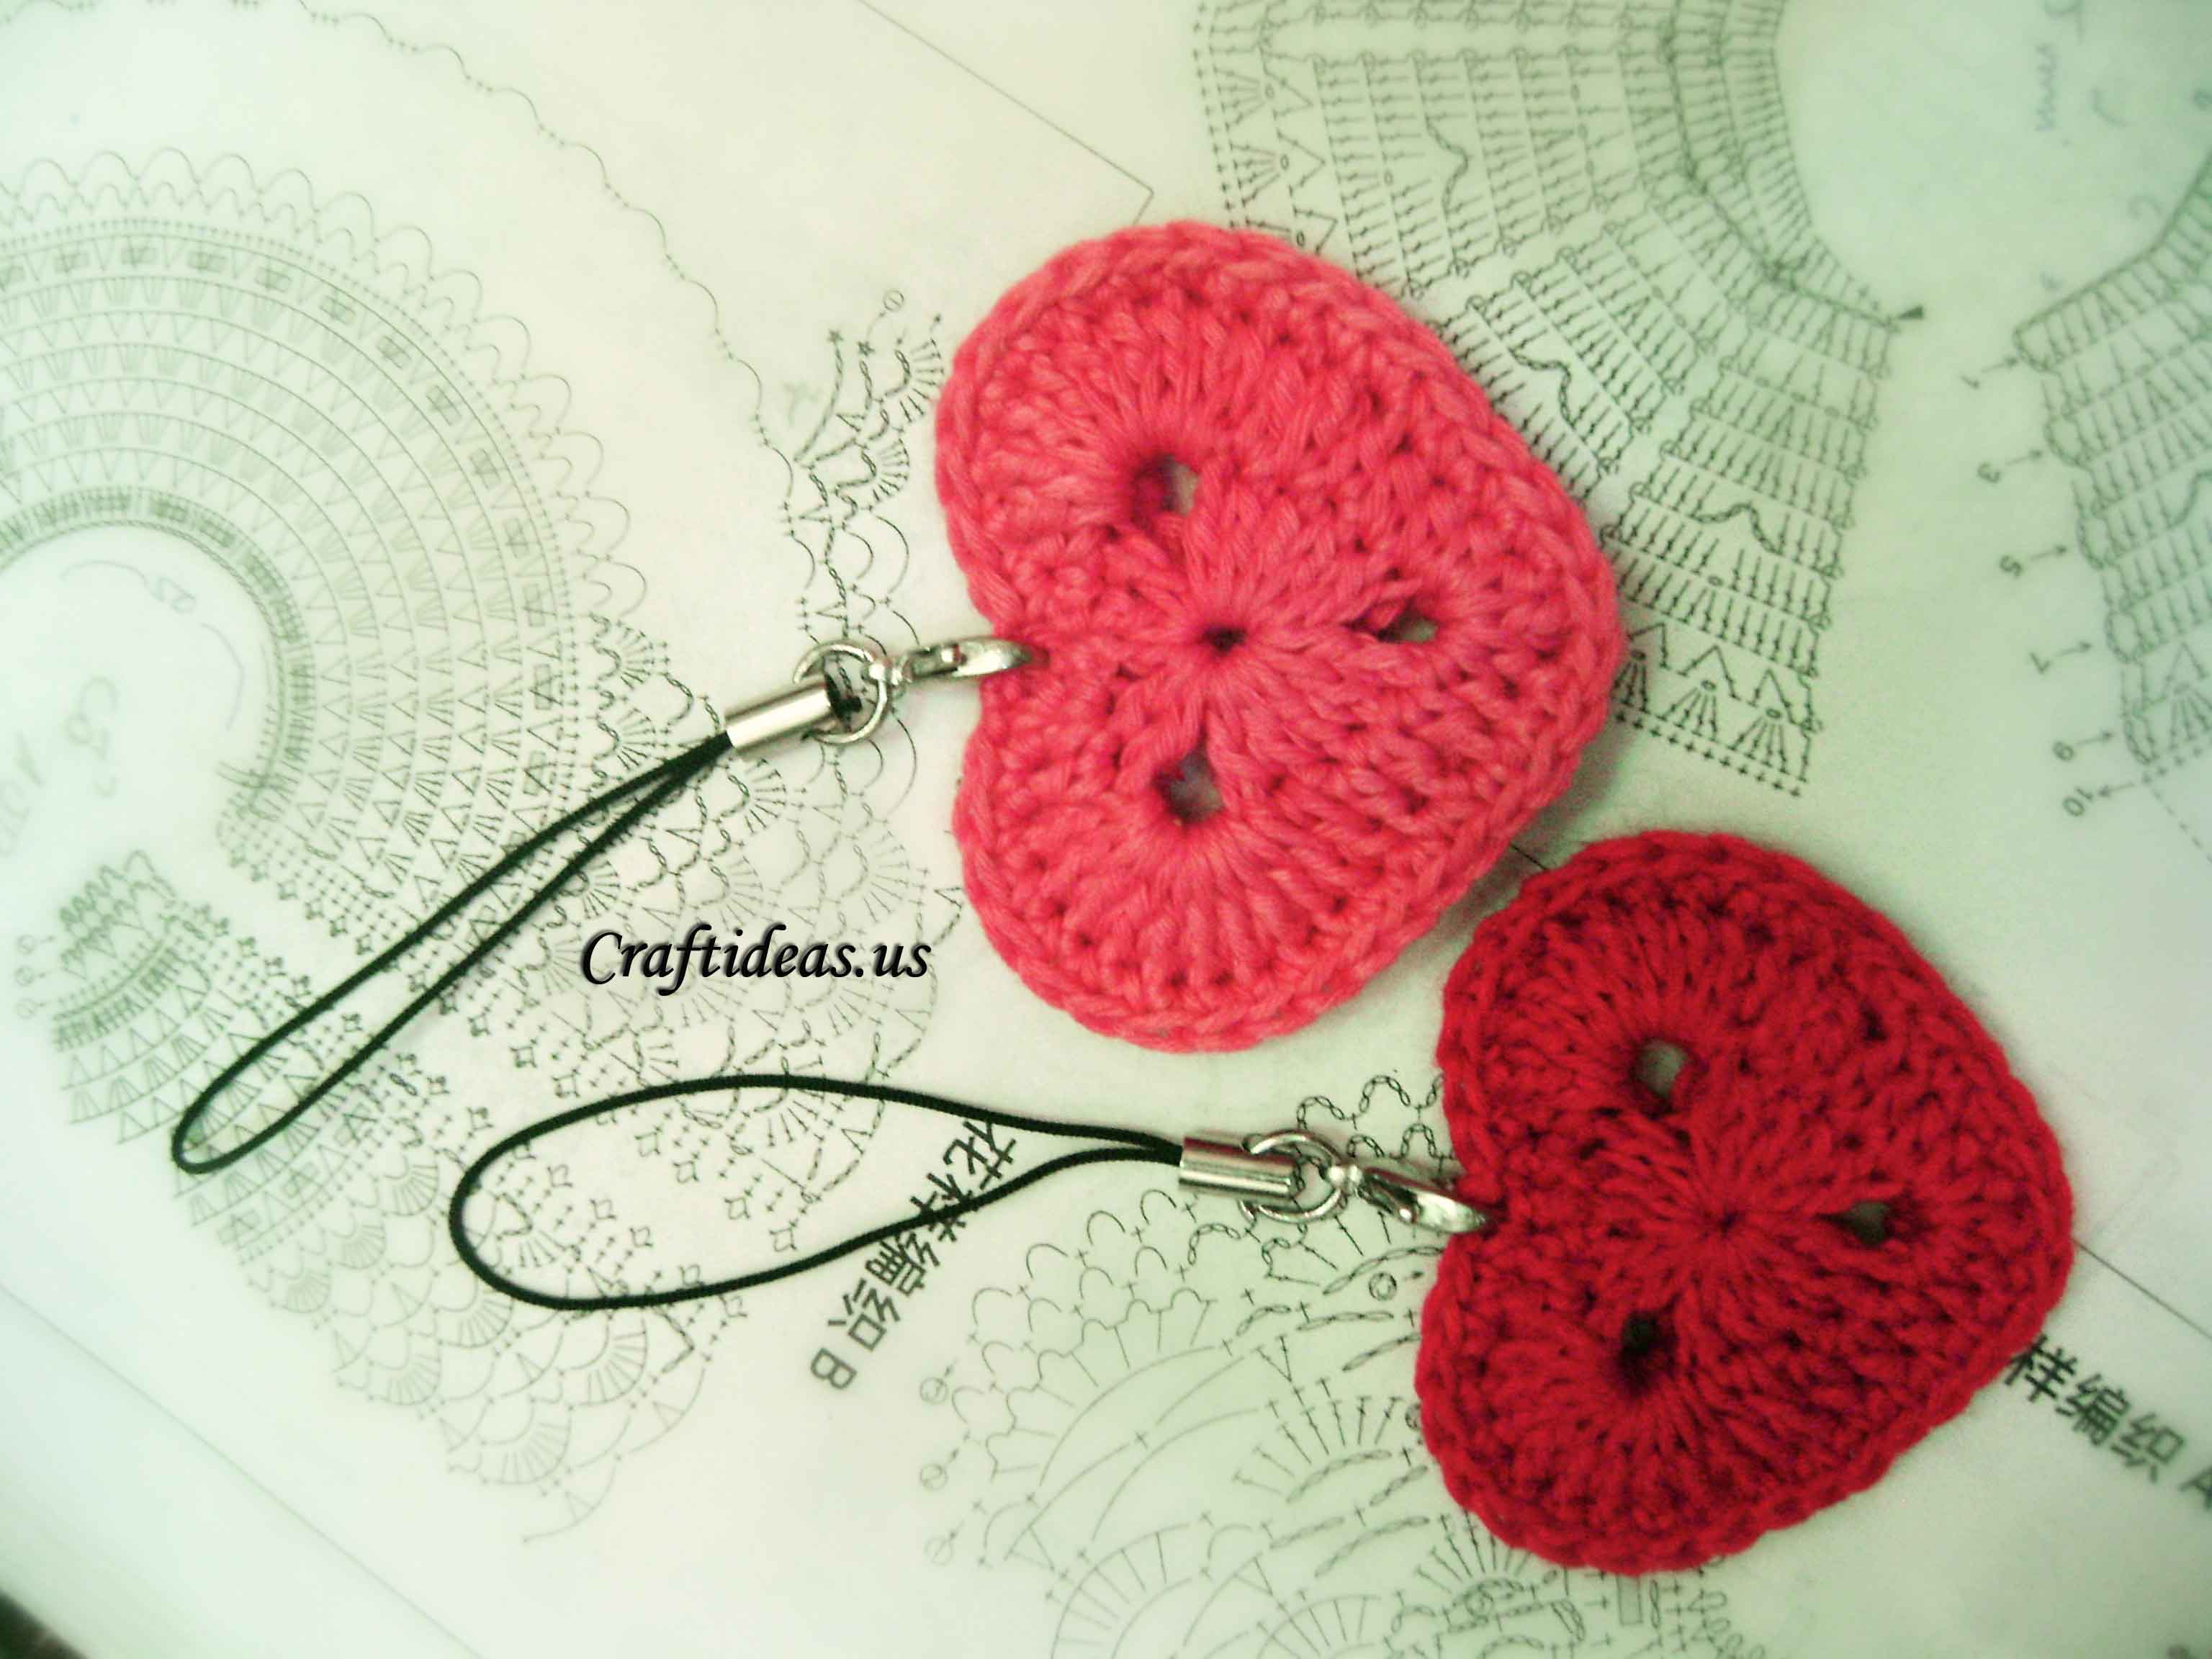 Crochet Heart : crochet heart key chain for valentine